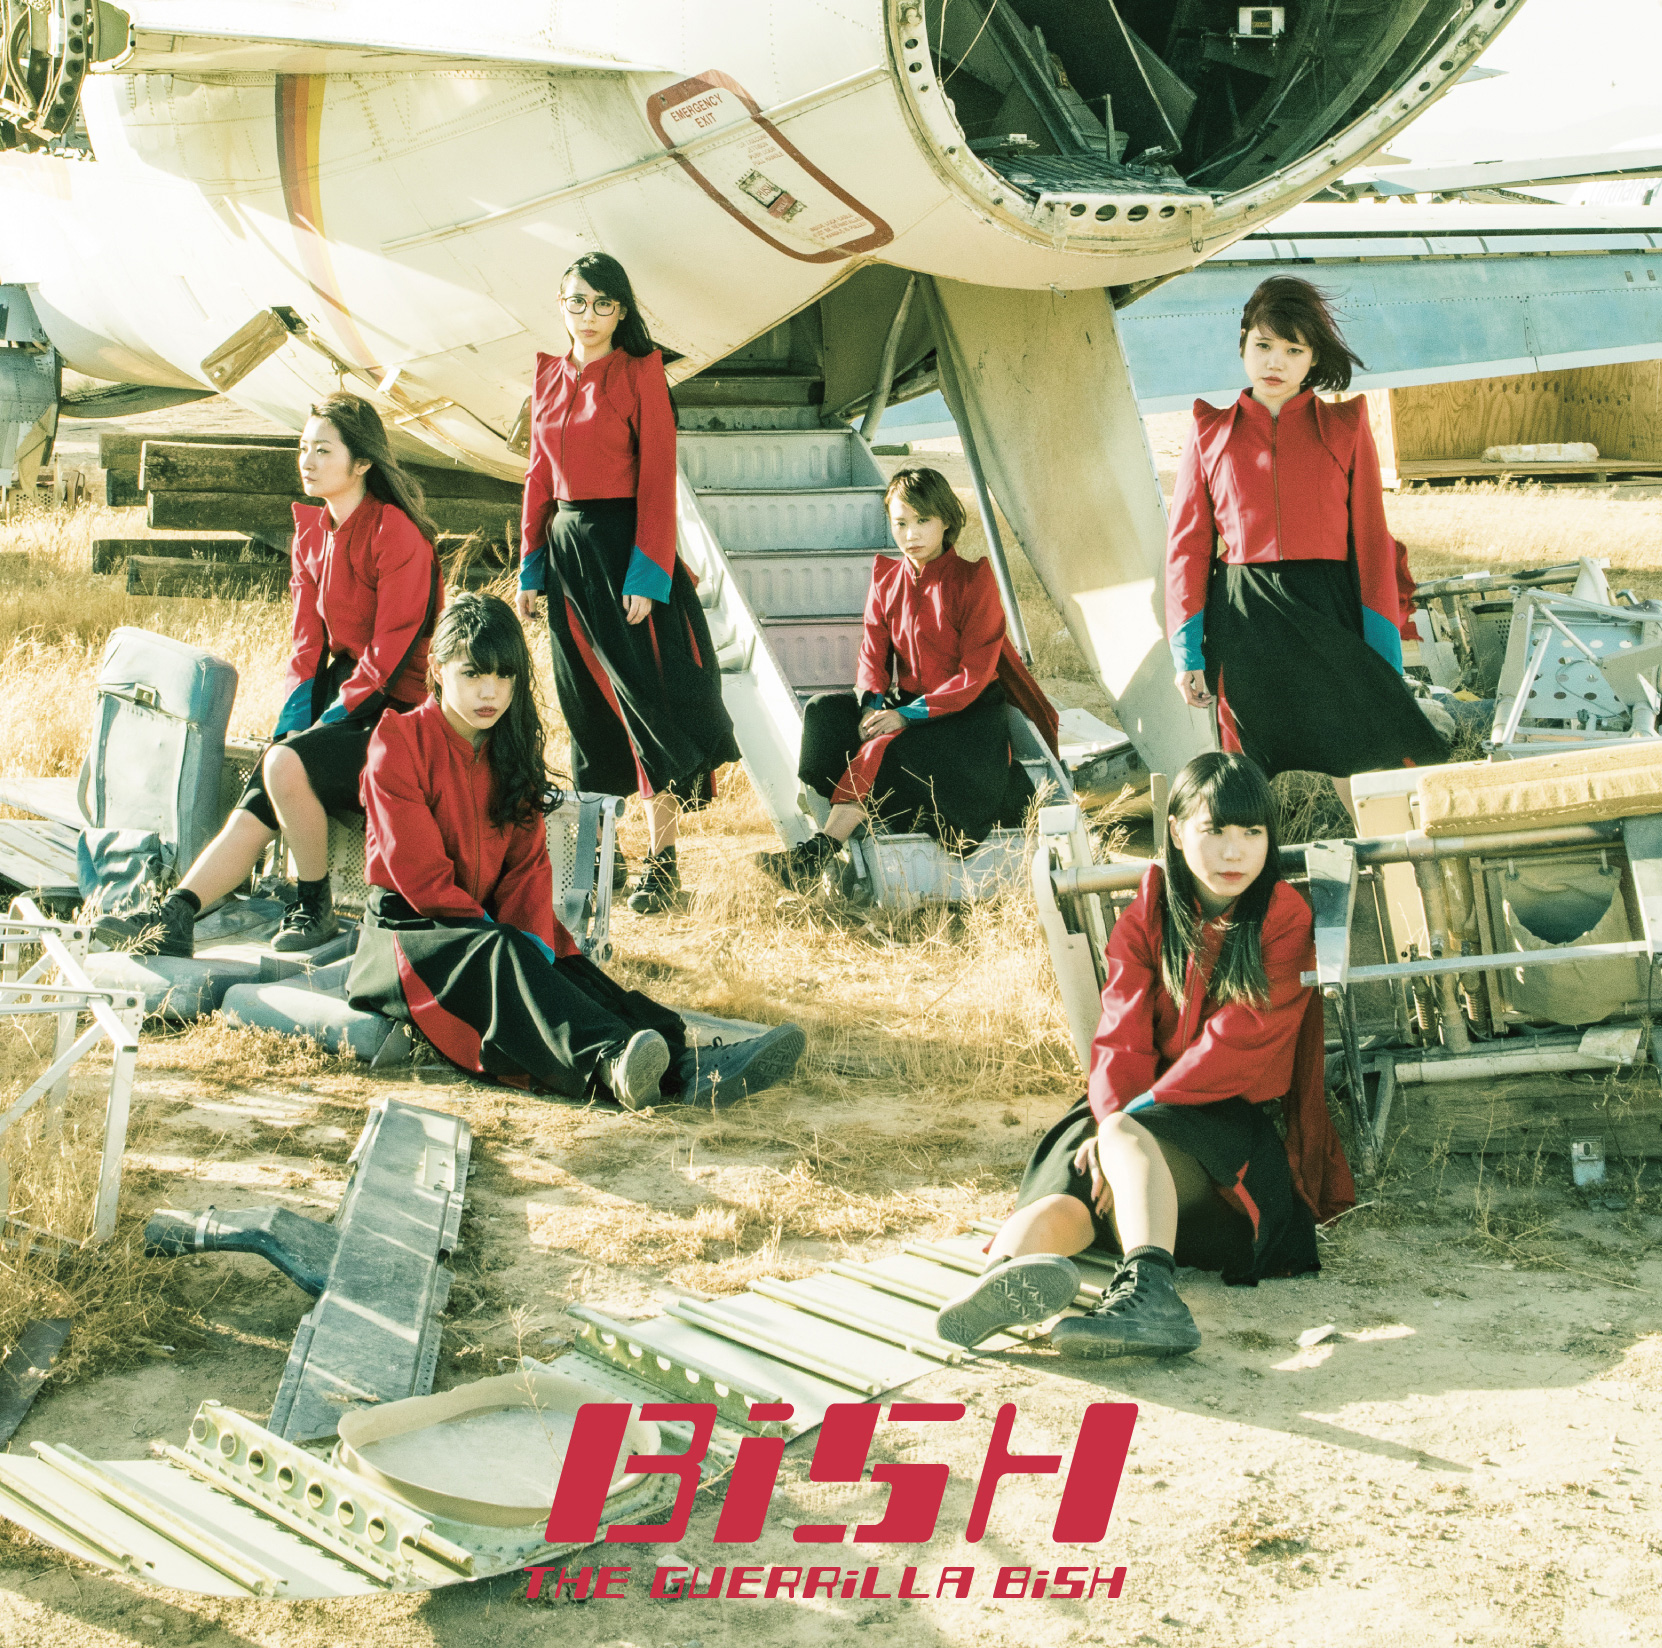 NekoPOP-BiSH-The-Guerrilla-BiSH-review-1